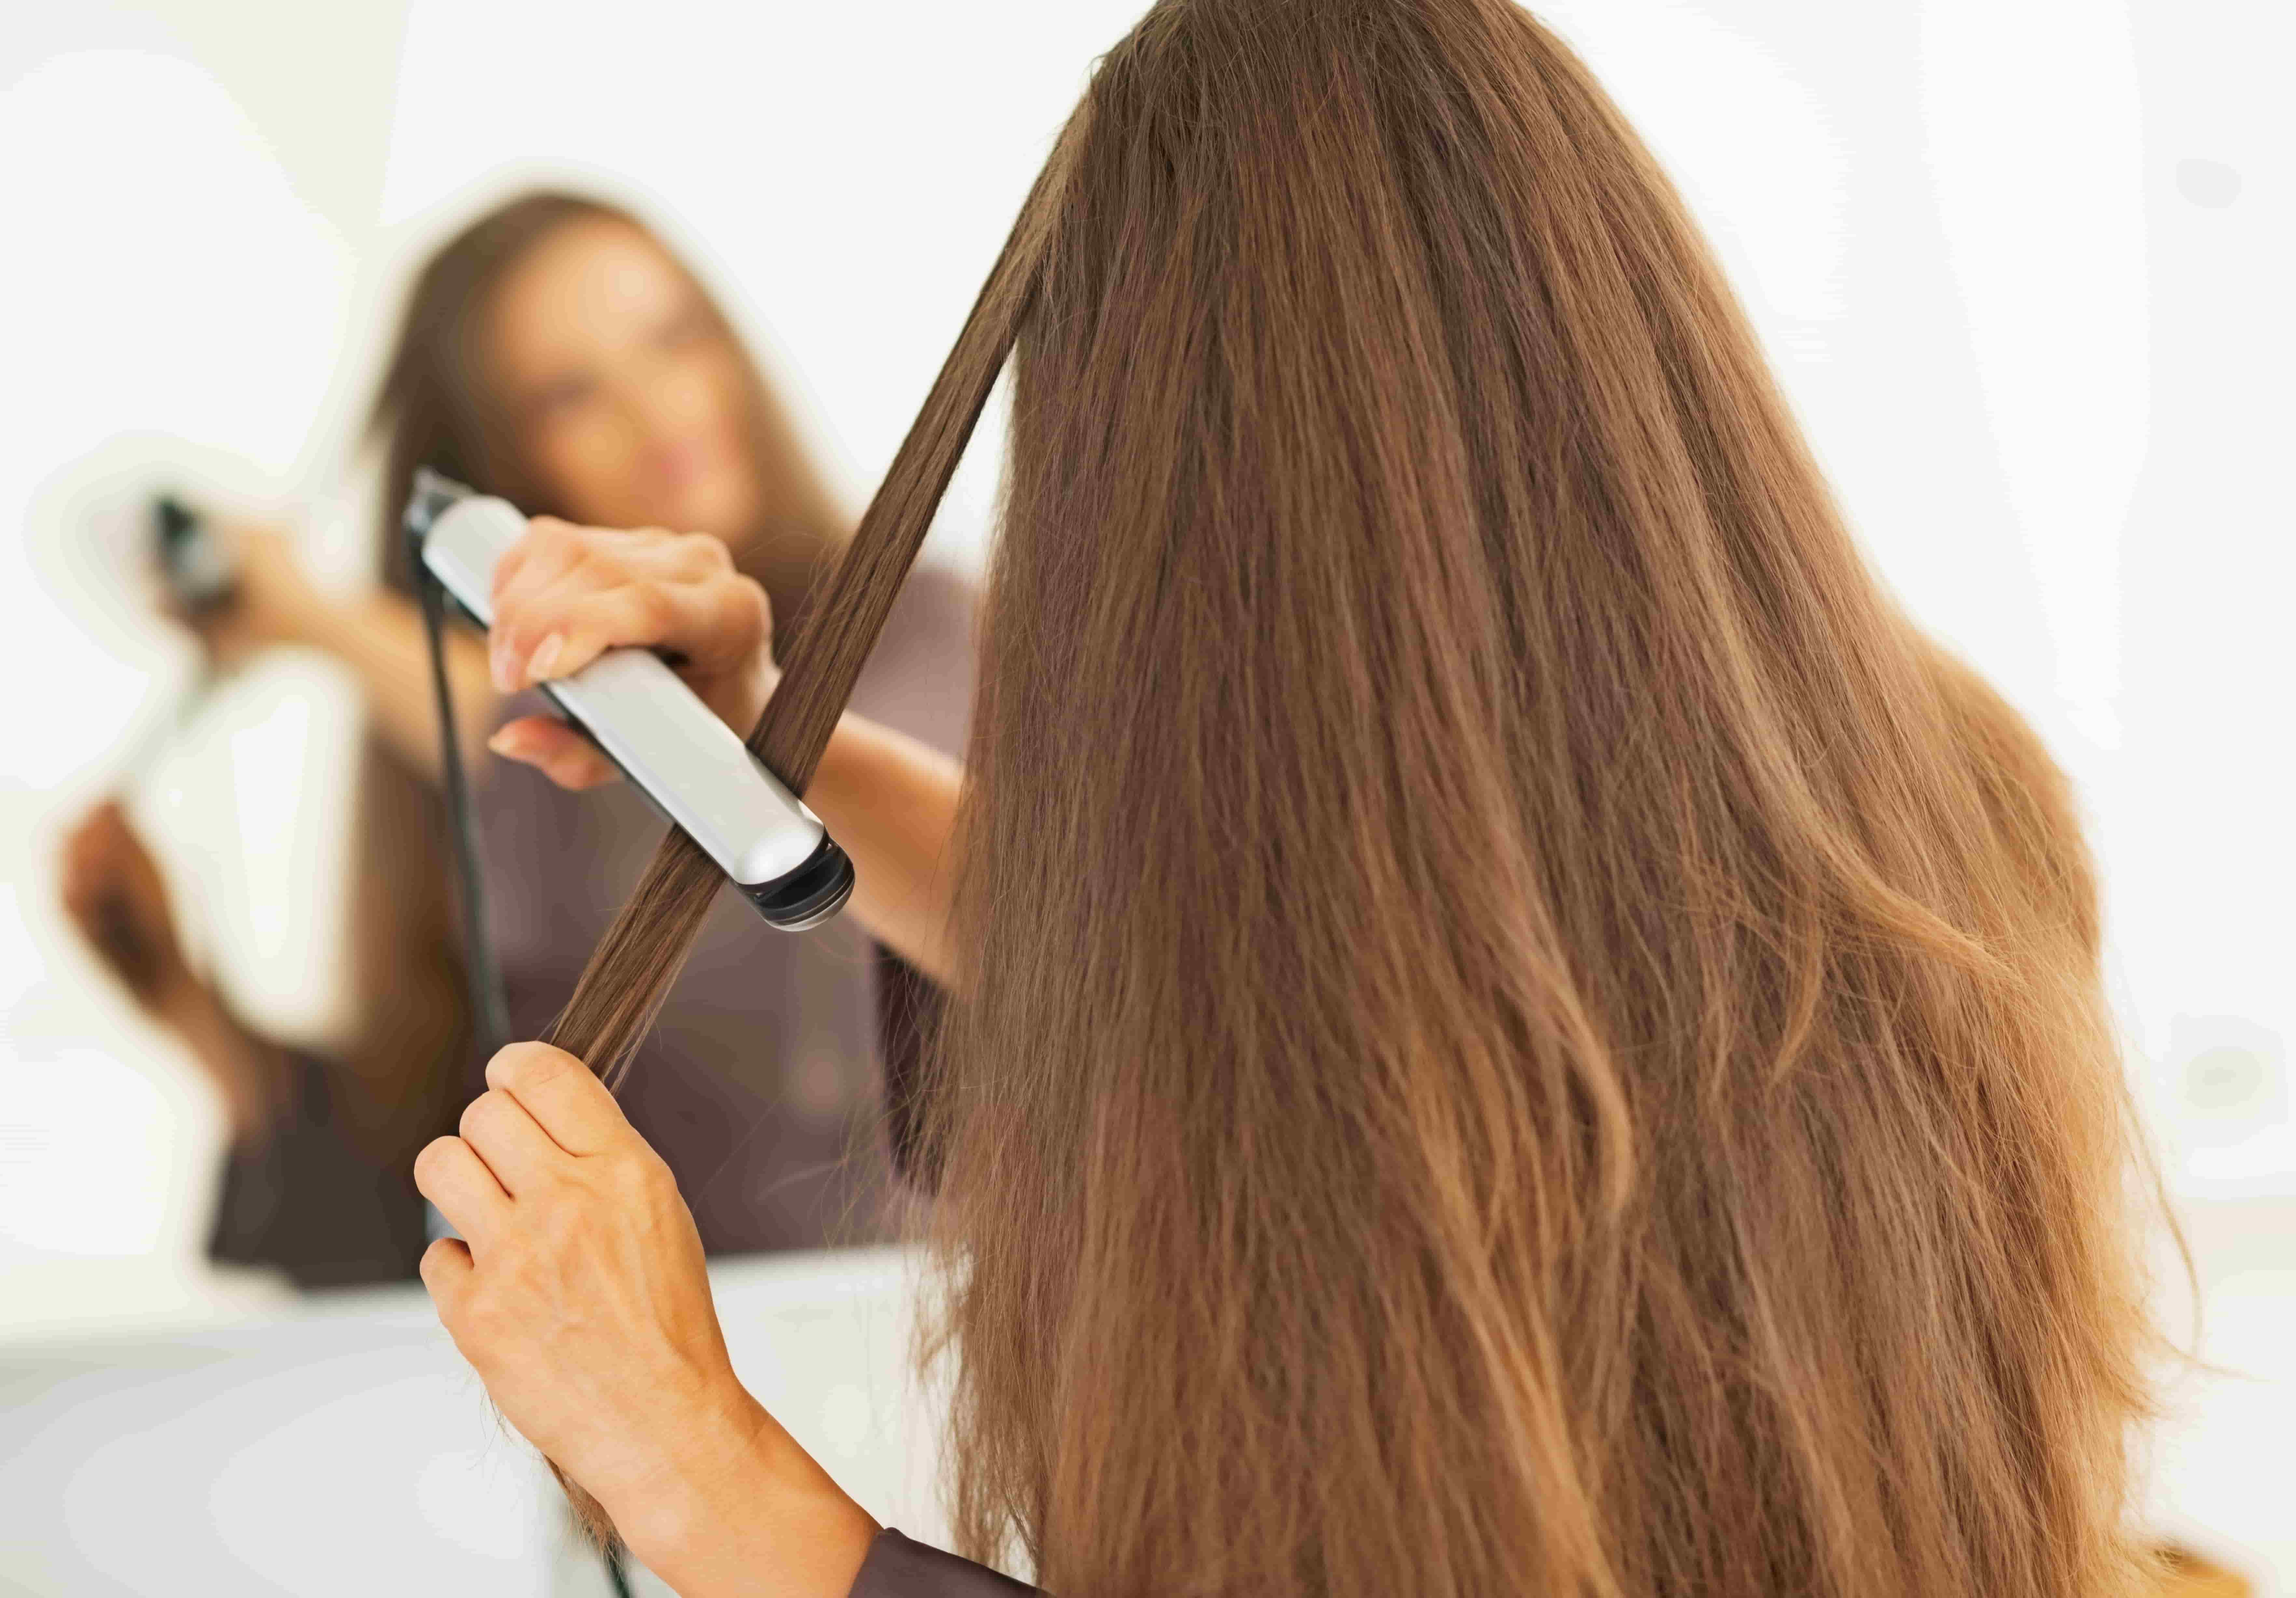 Woman with straighteners